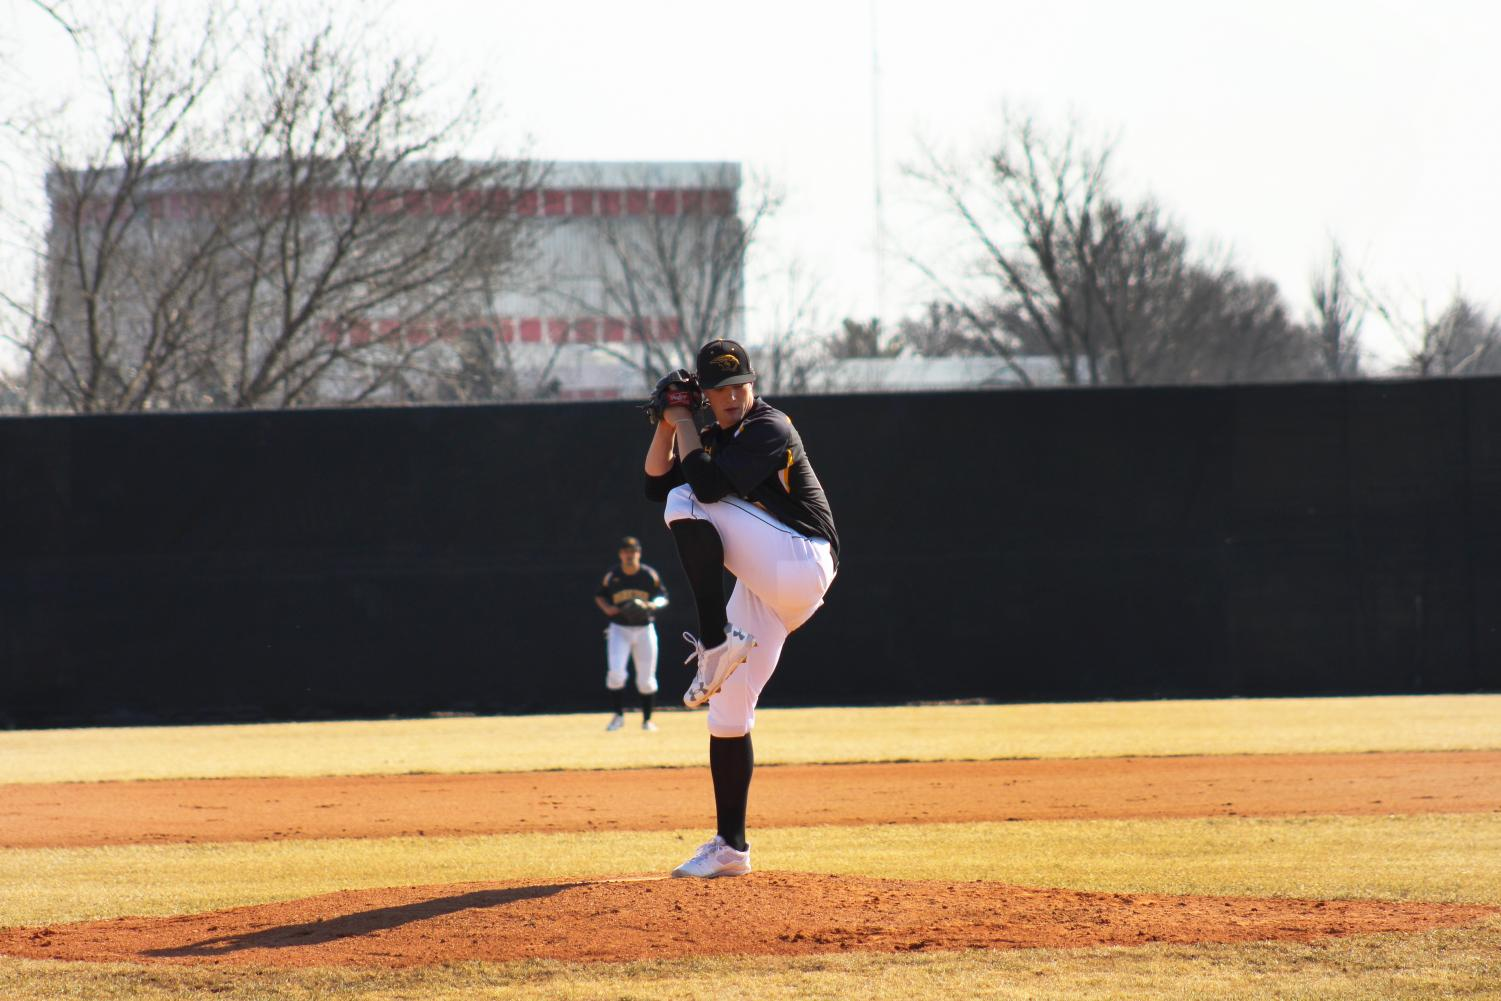 Junior hurler Colan Treml delivers a pitch against Wisconsin Lutheran College. Treml is 5-1 in 6 appearances this season.